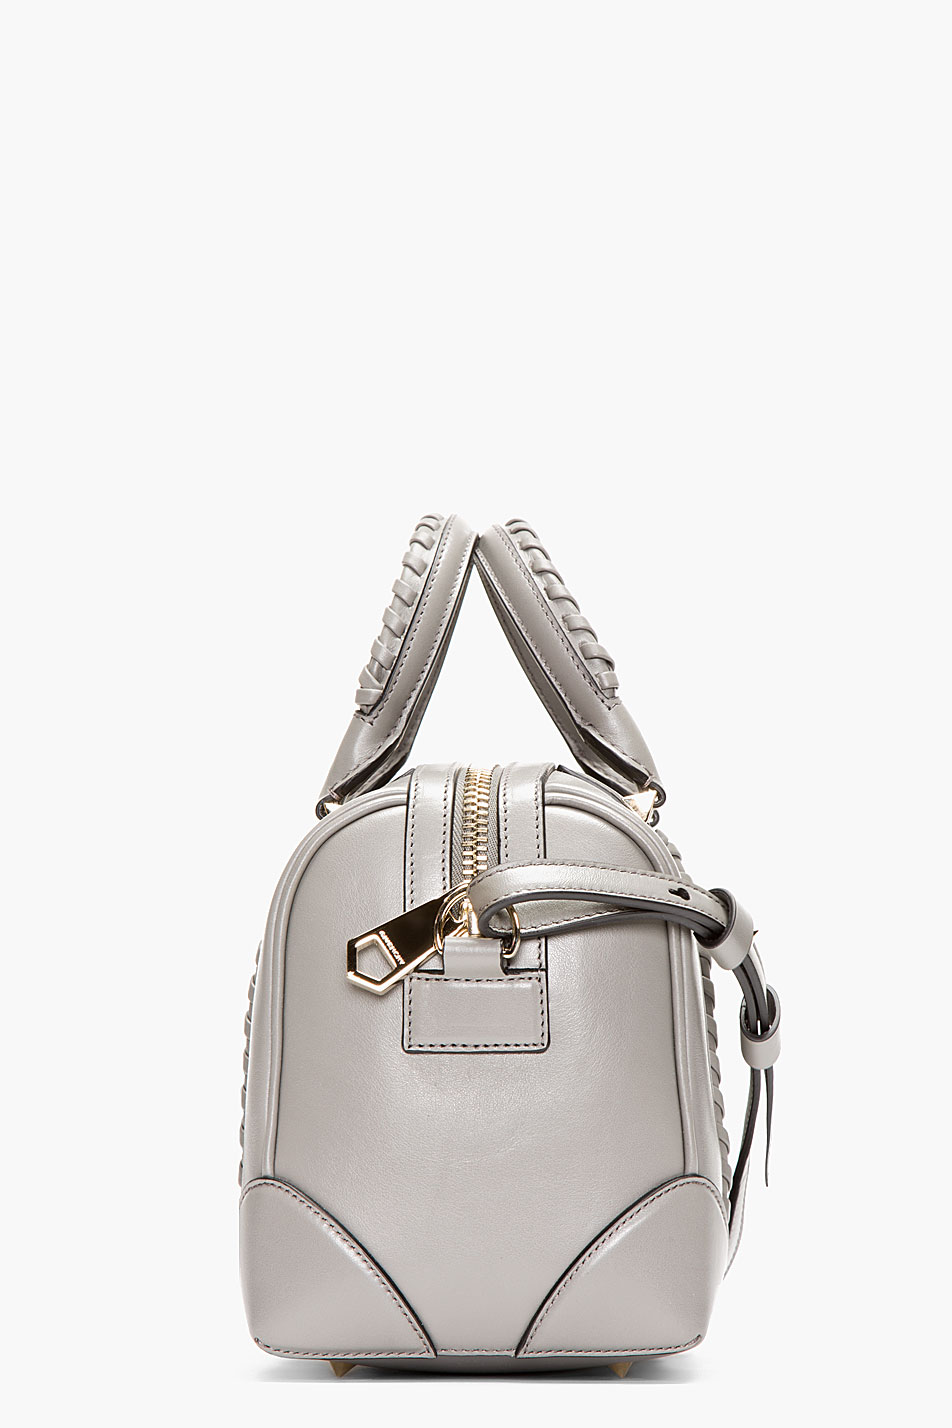 Givenchy Grey Braided Leather Lucrezia Small Duffle Bag In